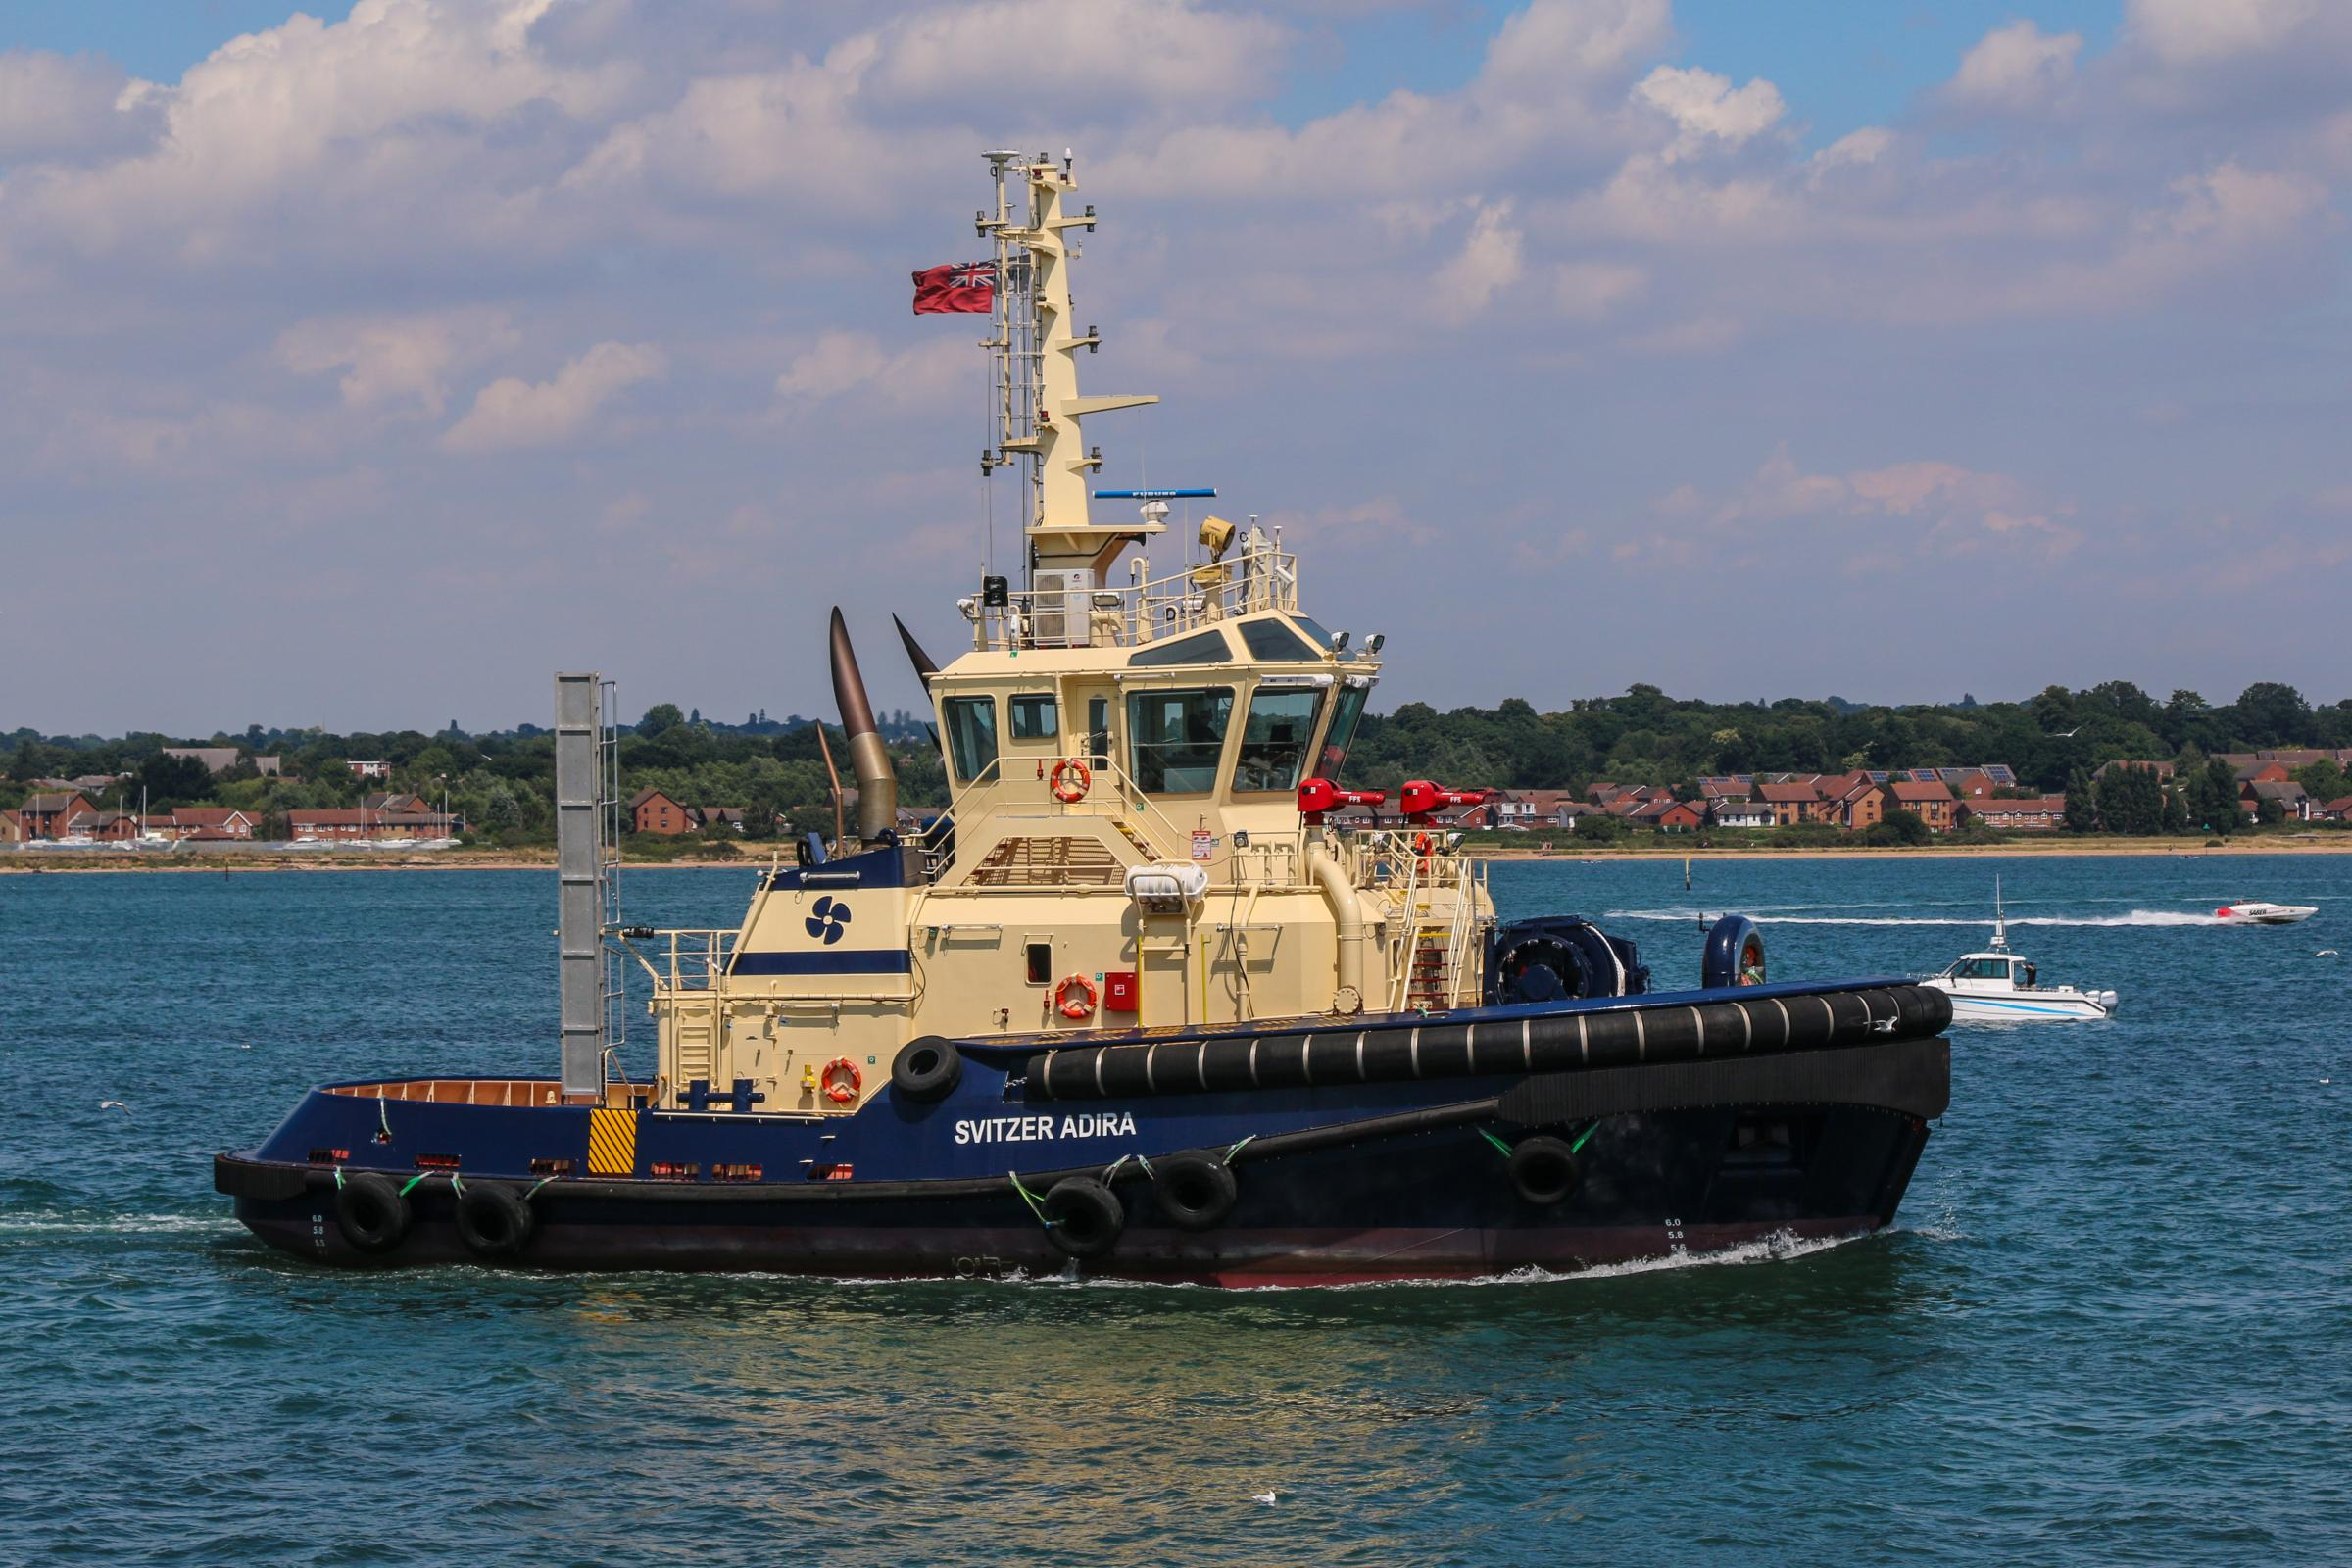 The new tug Svitzer Adira at work in the port